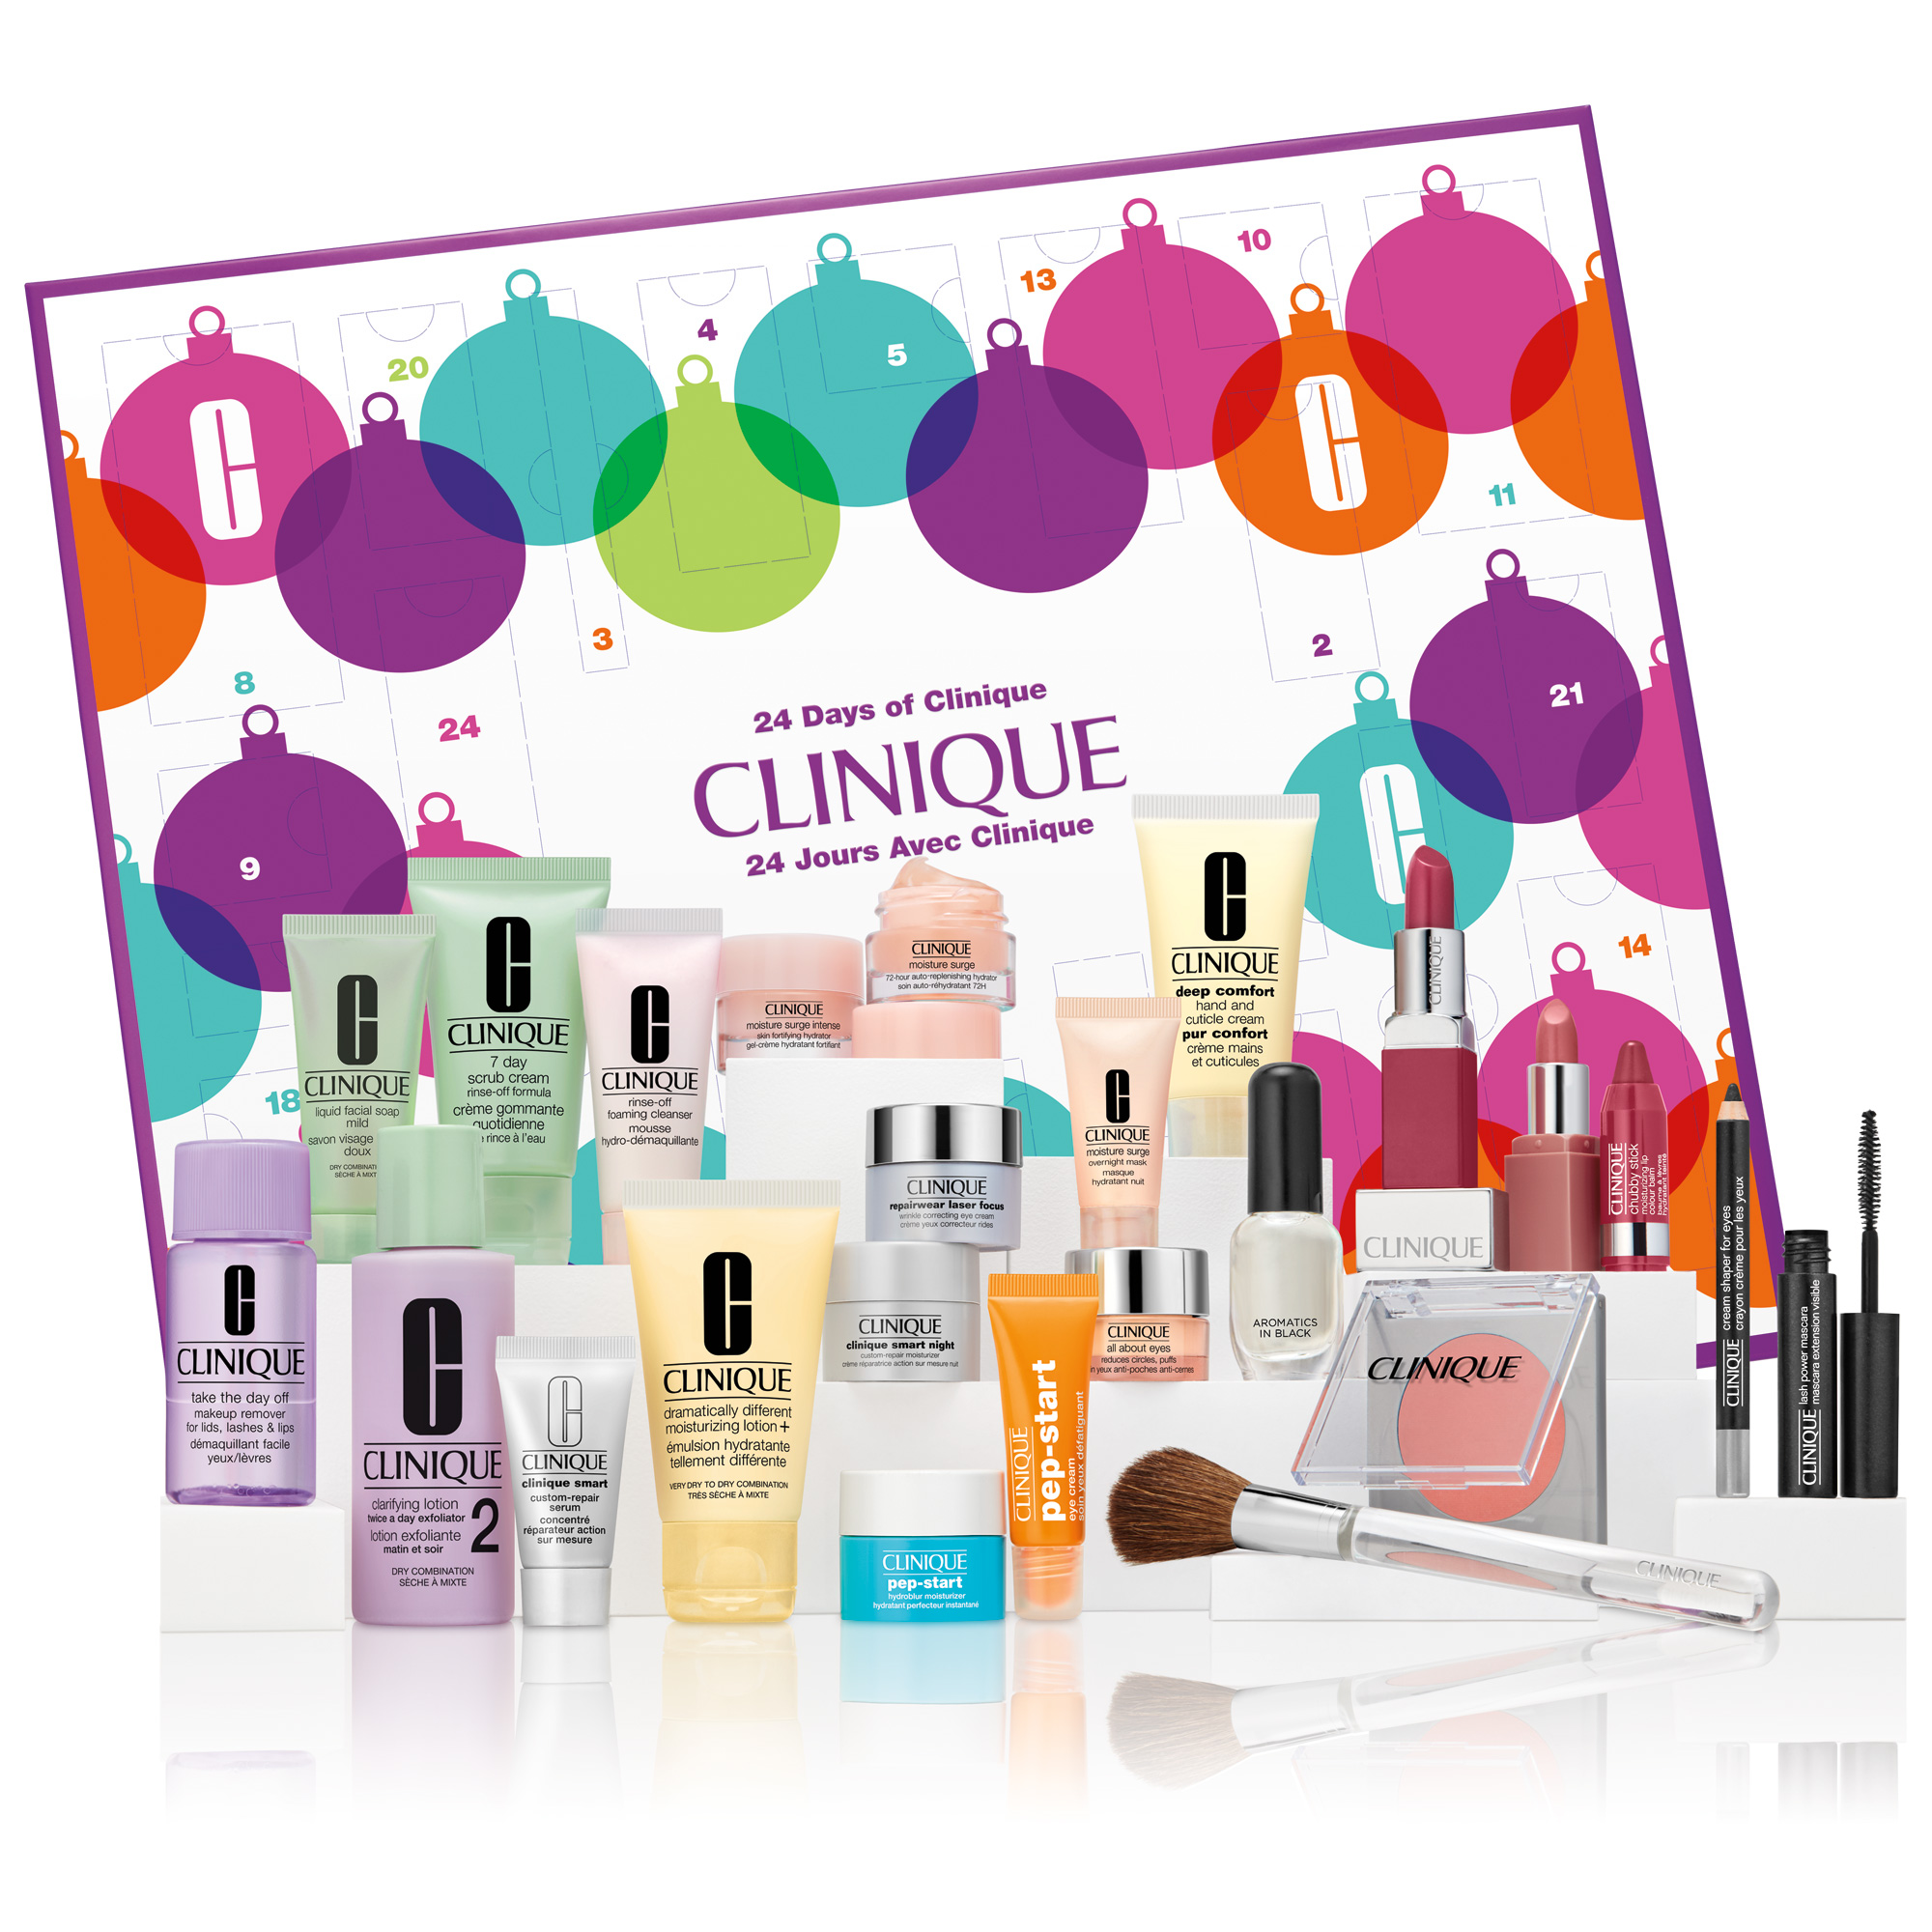 24 Days Of Clinique Calendar